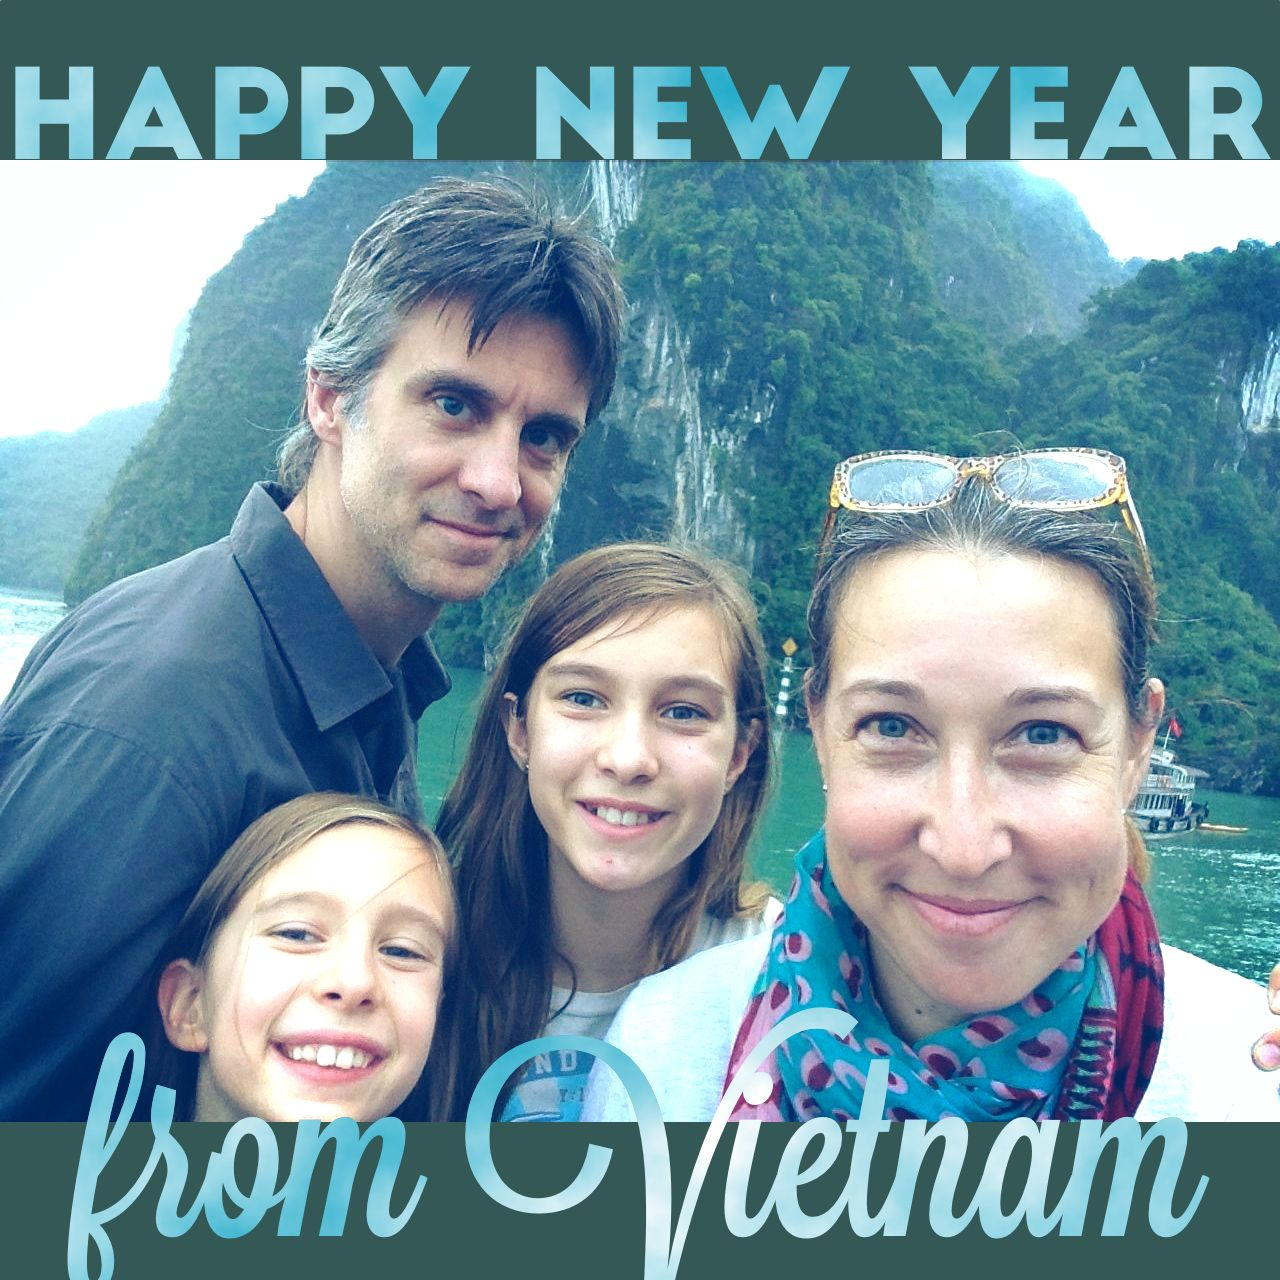 happy-new-year-vietnam.jpg